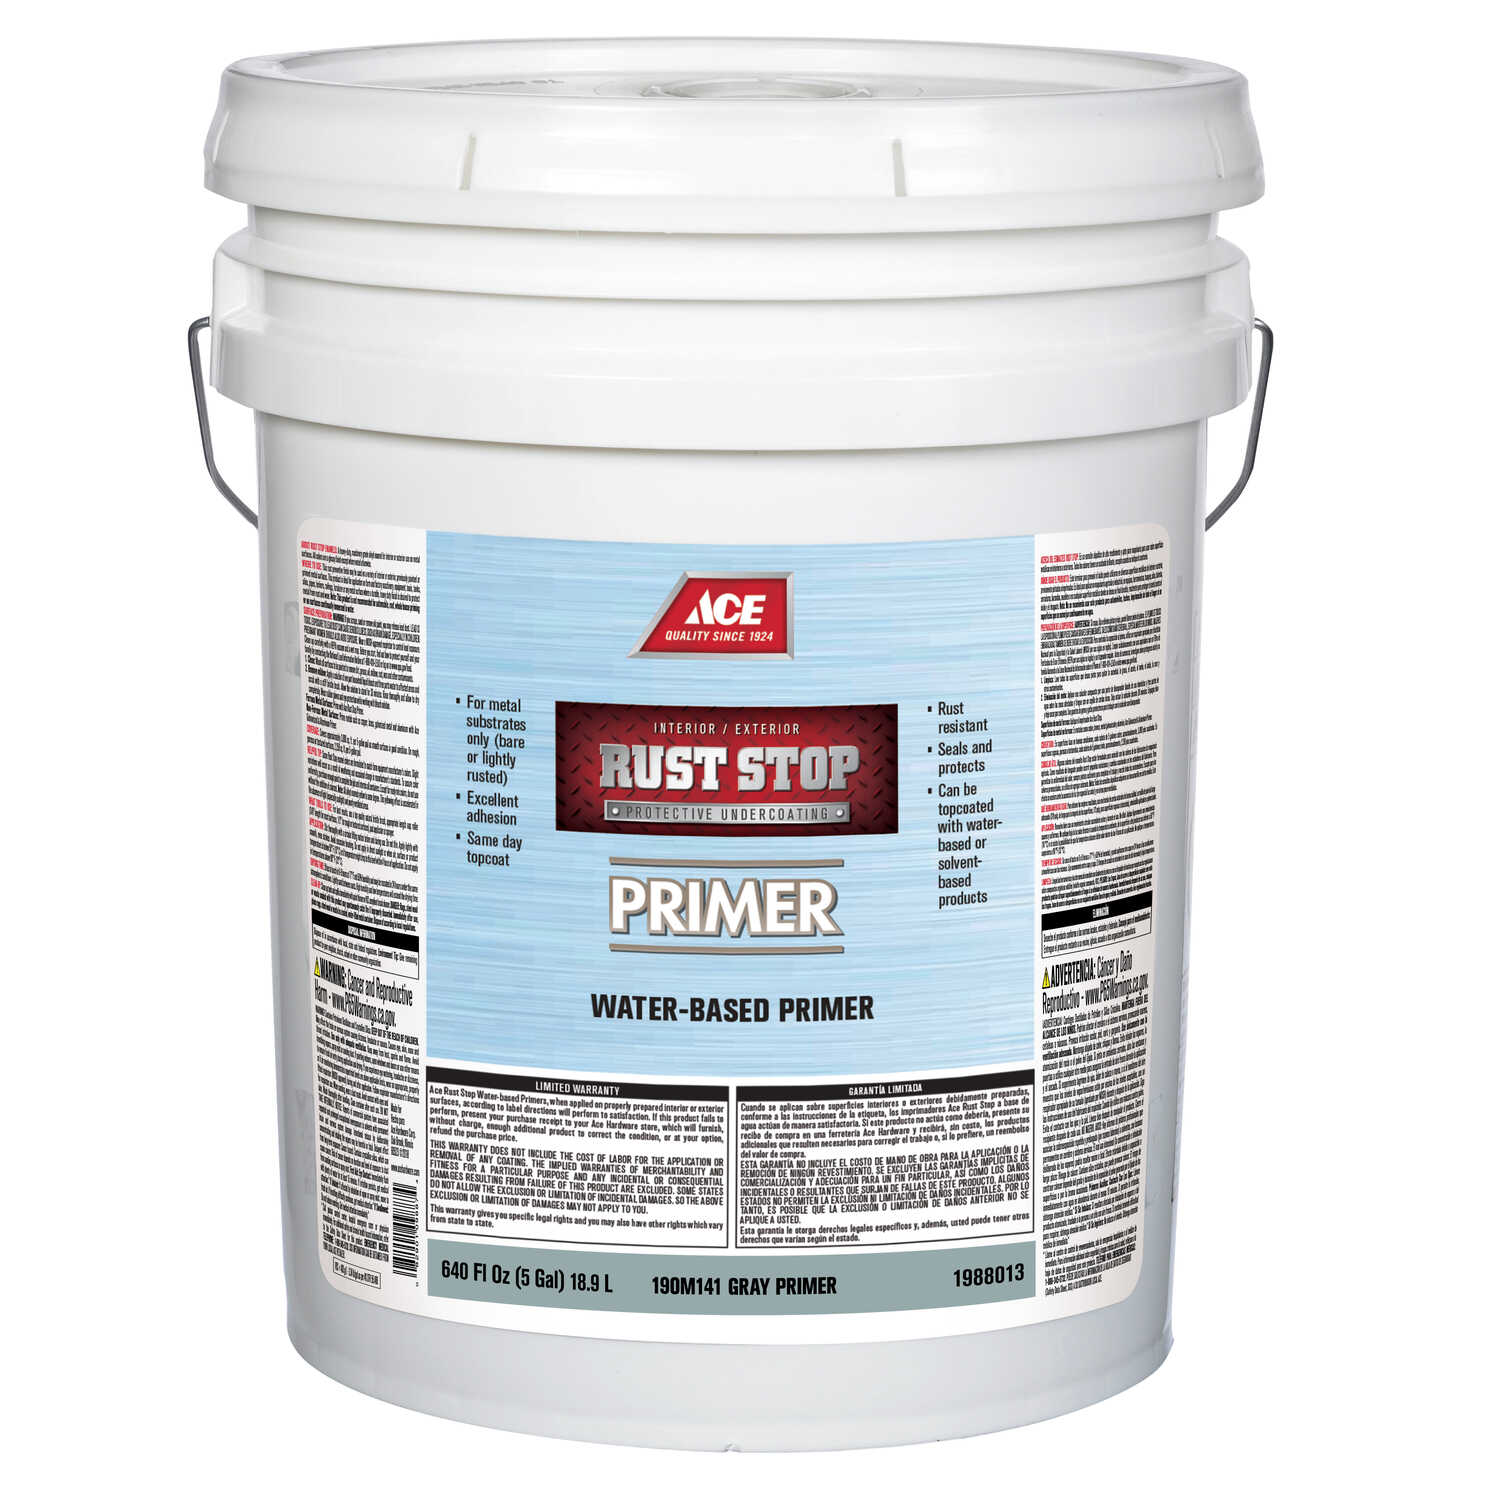 Ace  Rust Stop  Gray  Flat  Primer  5 gal. Acrylic Latex  For Clean Metals